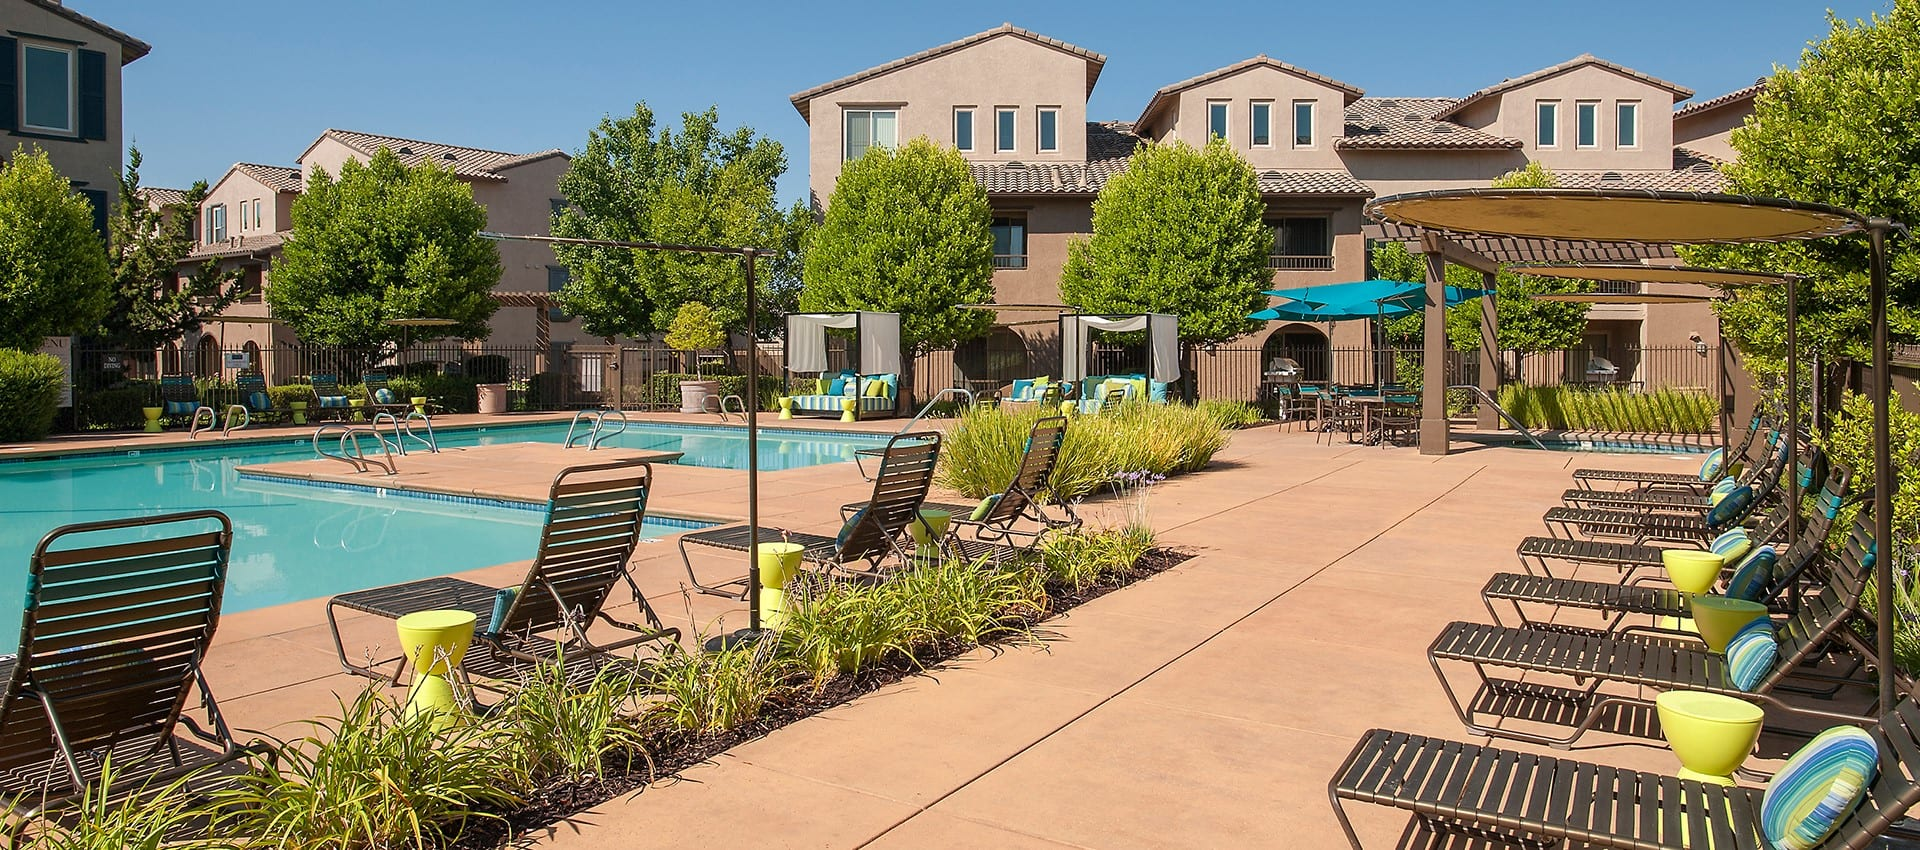 Pool decks at Venu at Galleria Condominium Rentals in Roseville , California